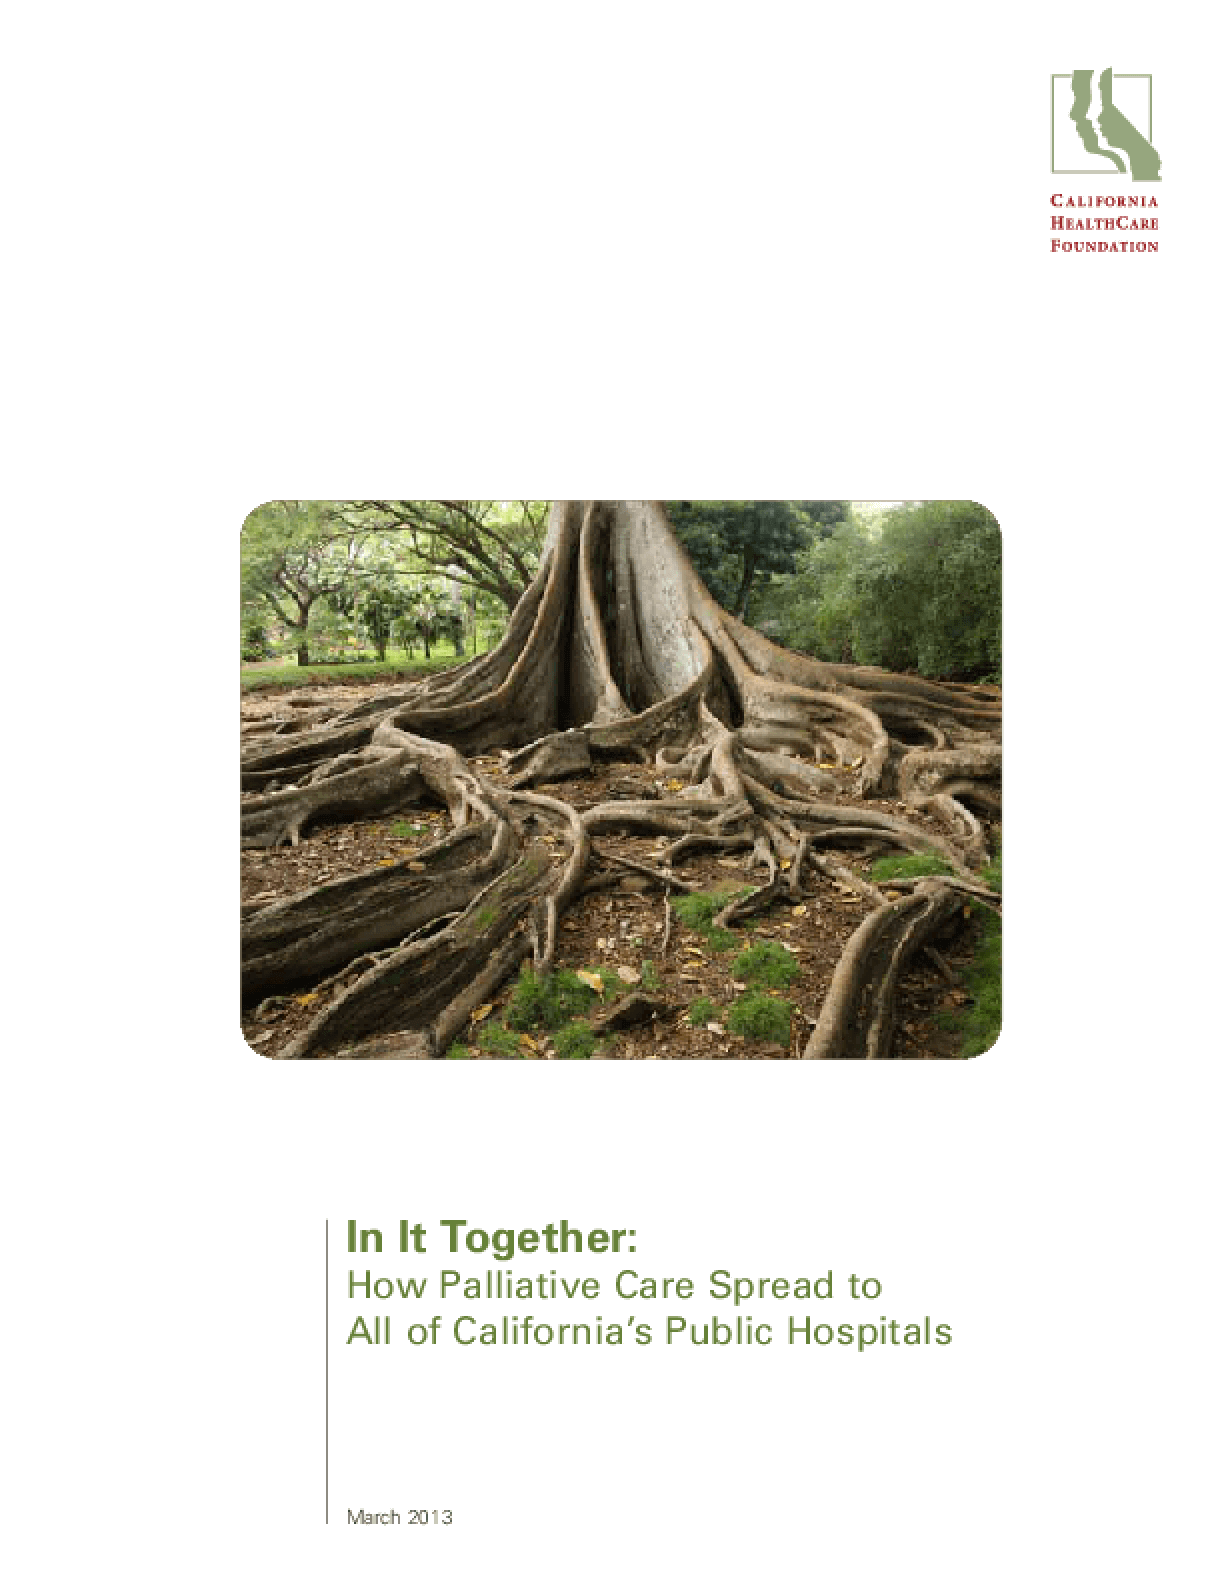 In It Together: How Palliative Care Spread to All of California's Hospitals